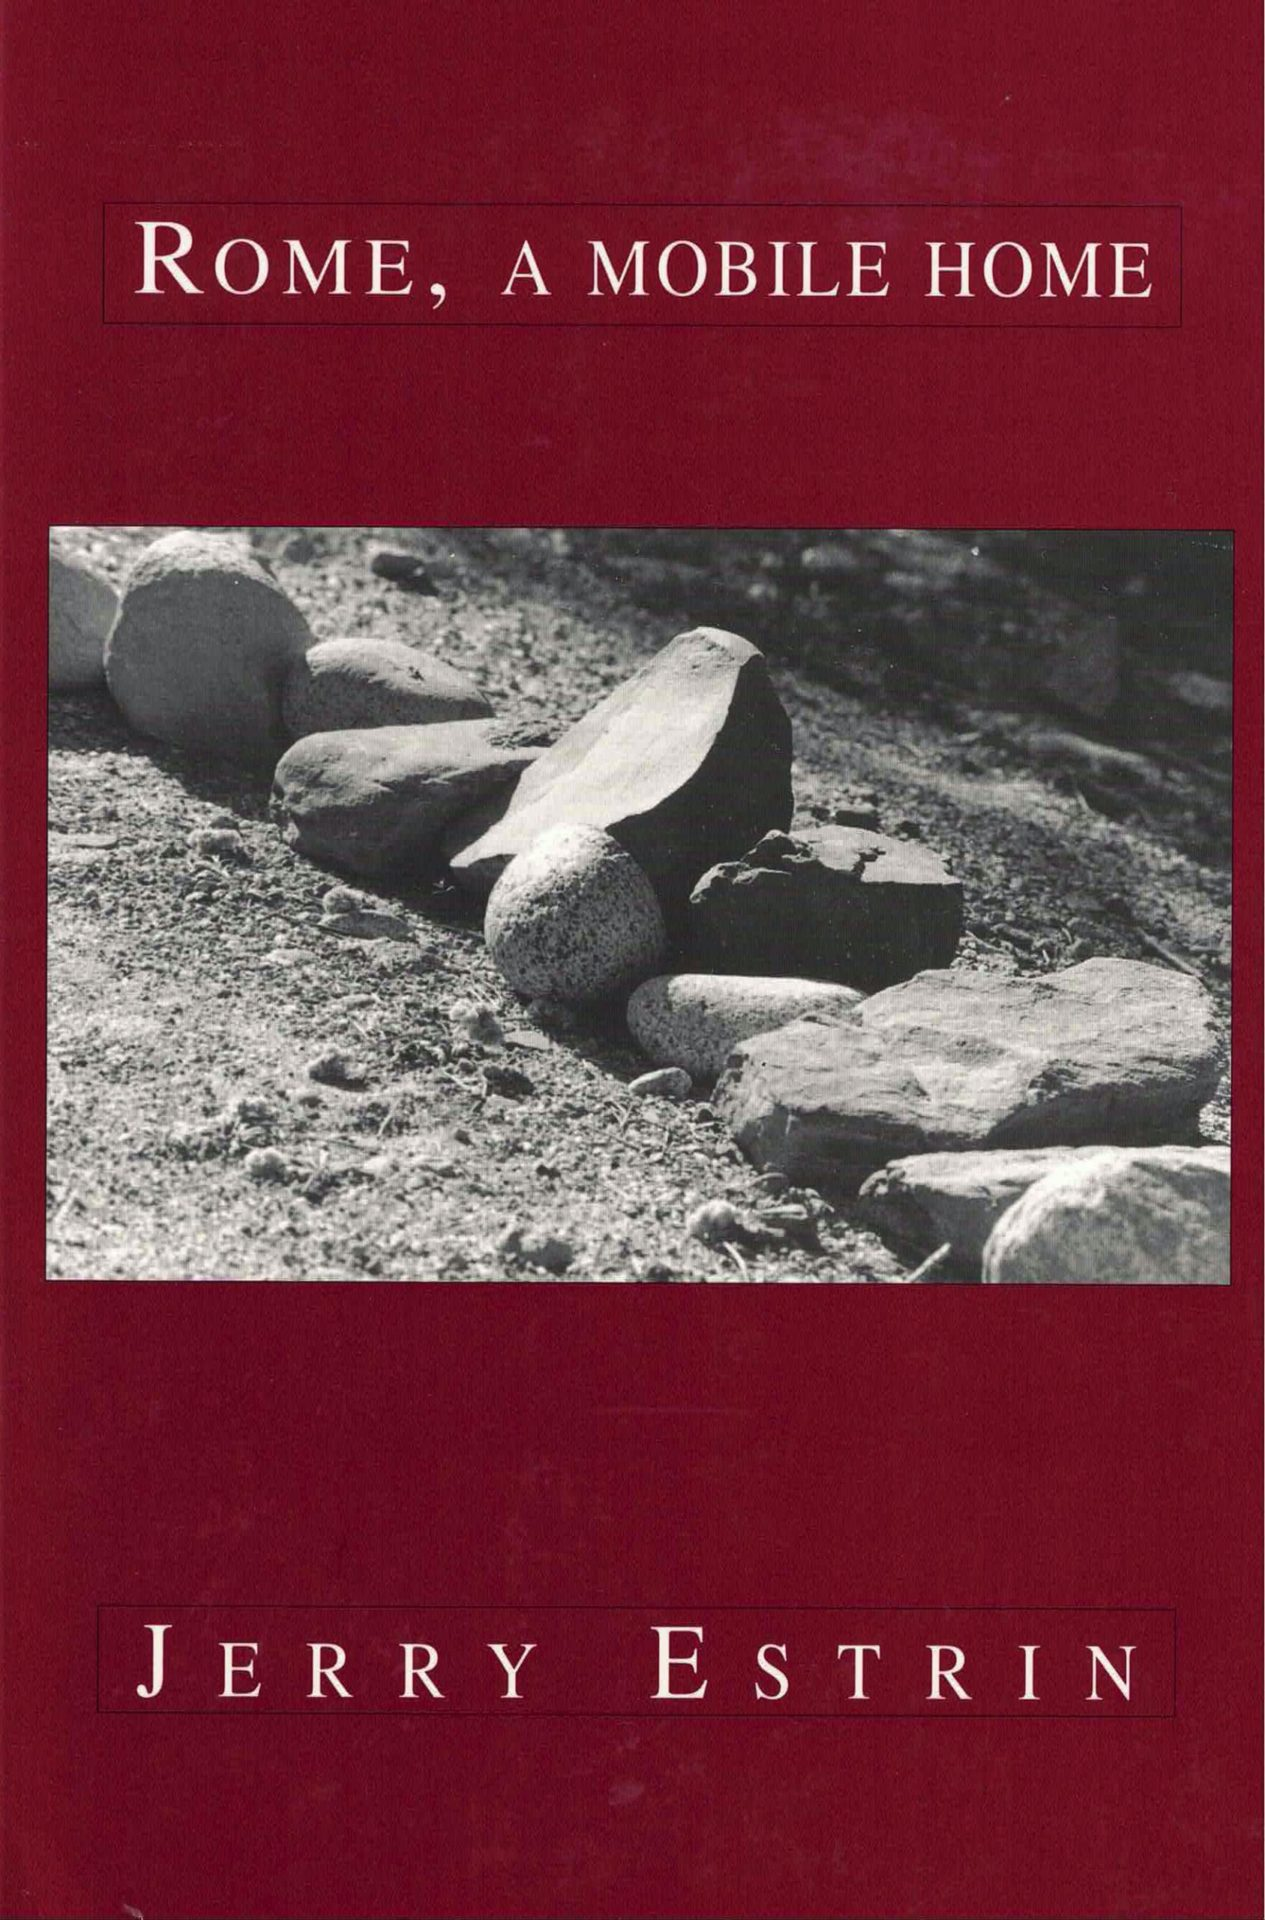 cover of Rome, A Mobile Home by Jerry Estrin, dark red background with horizontal b&w close-up photo of a line of stones in sand